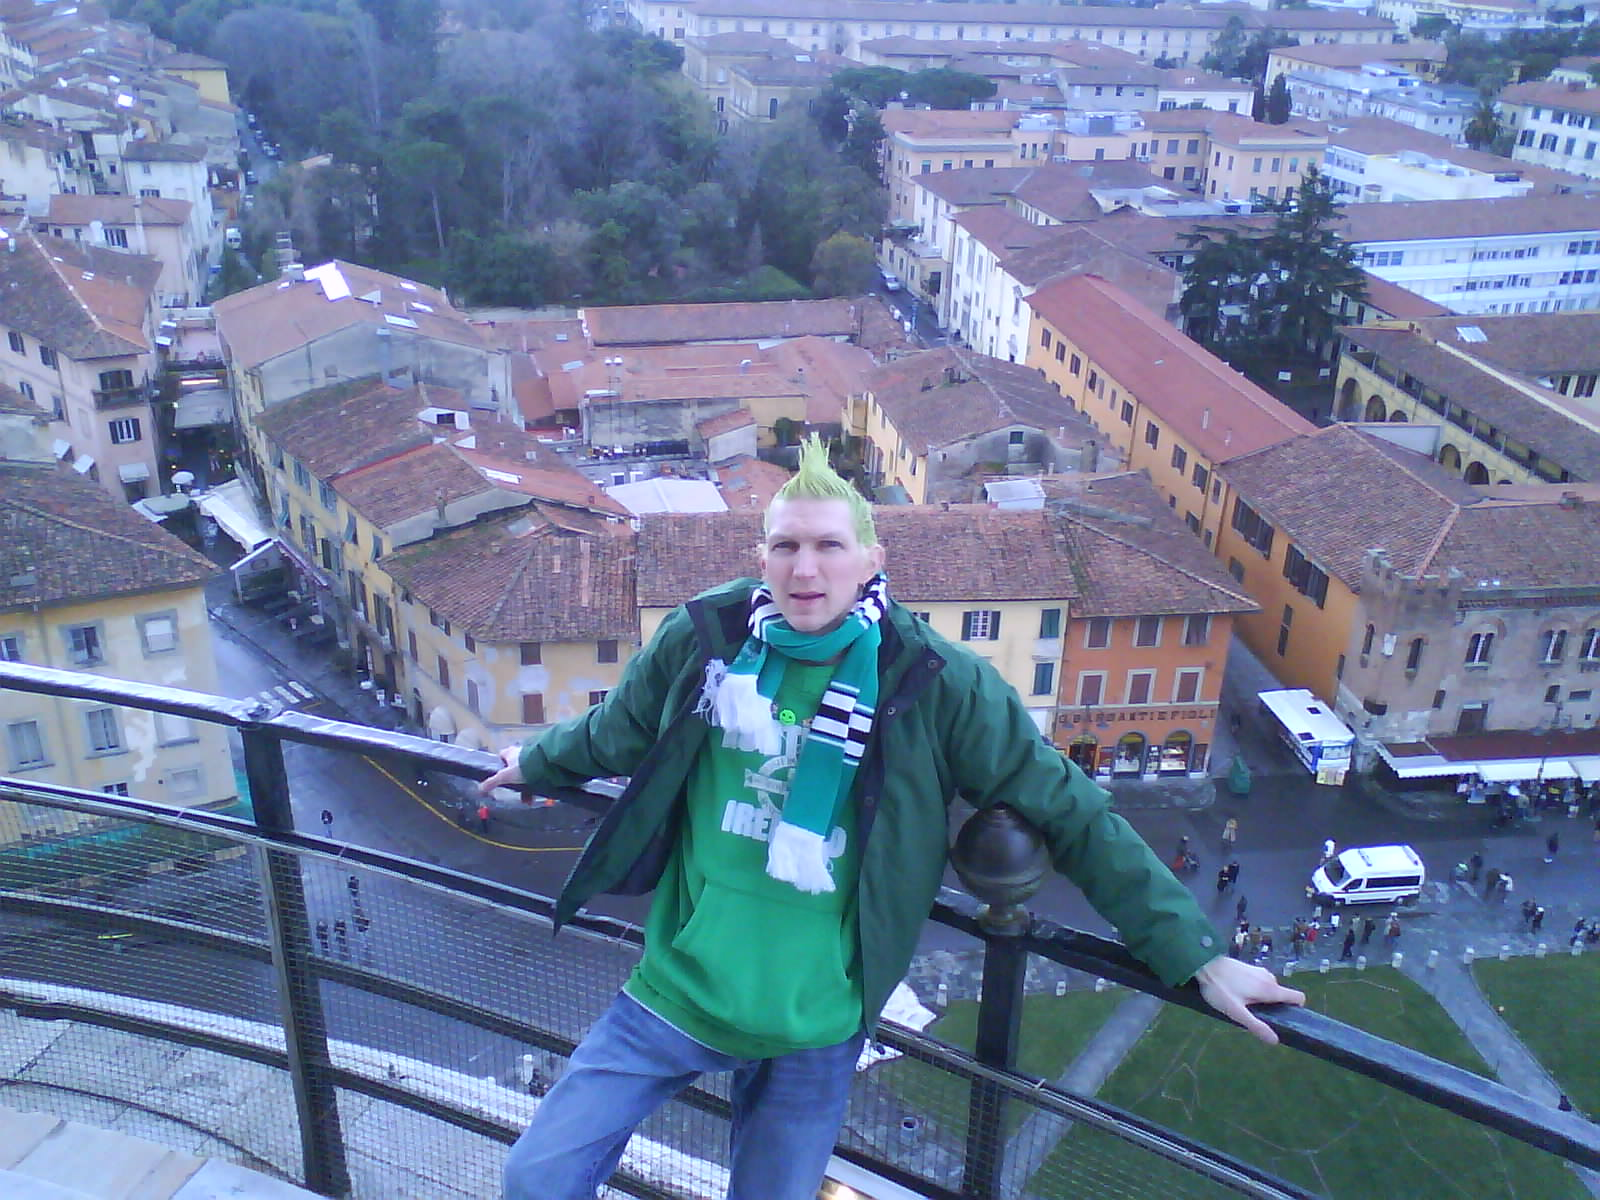 jonny blair in pisa